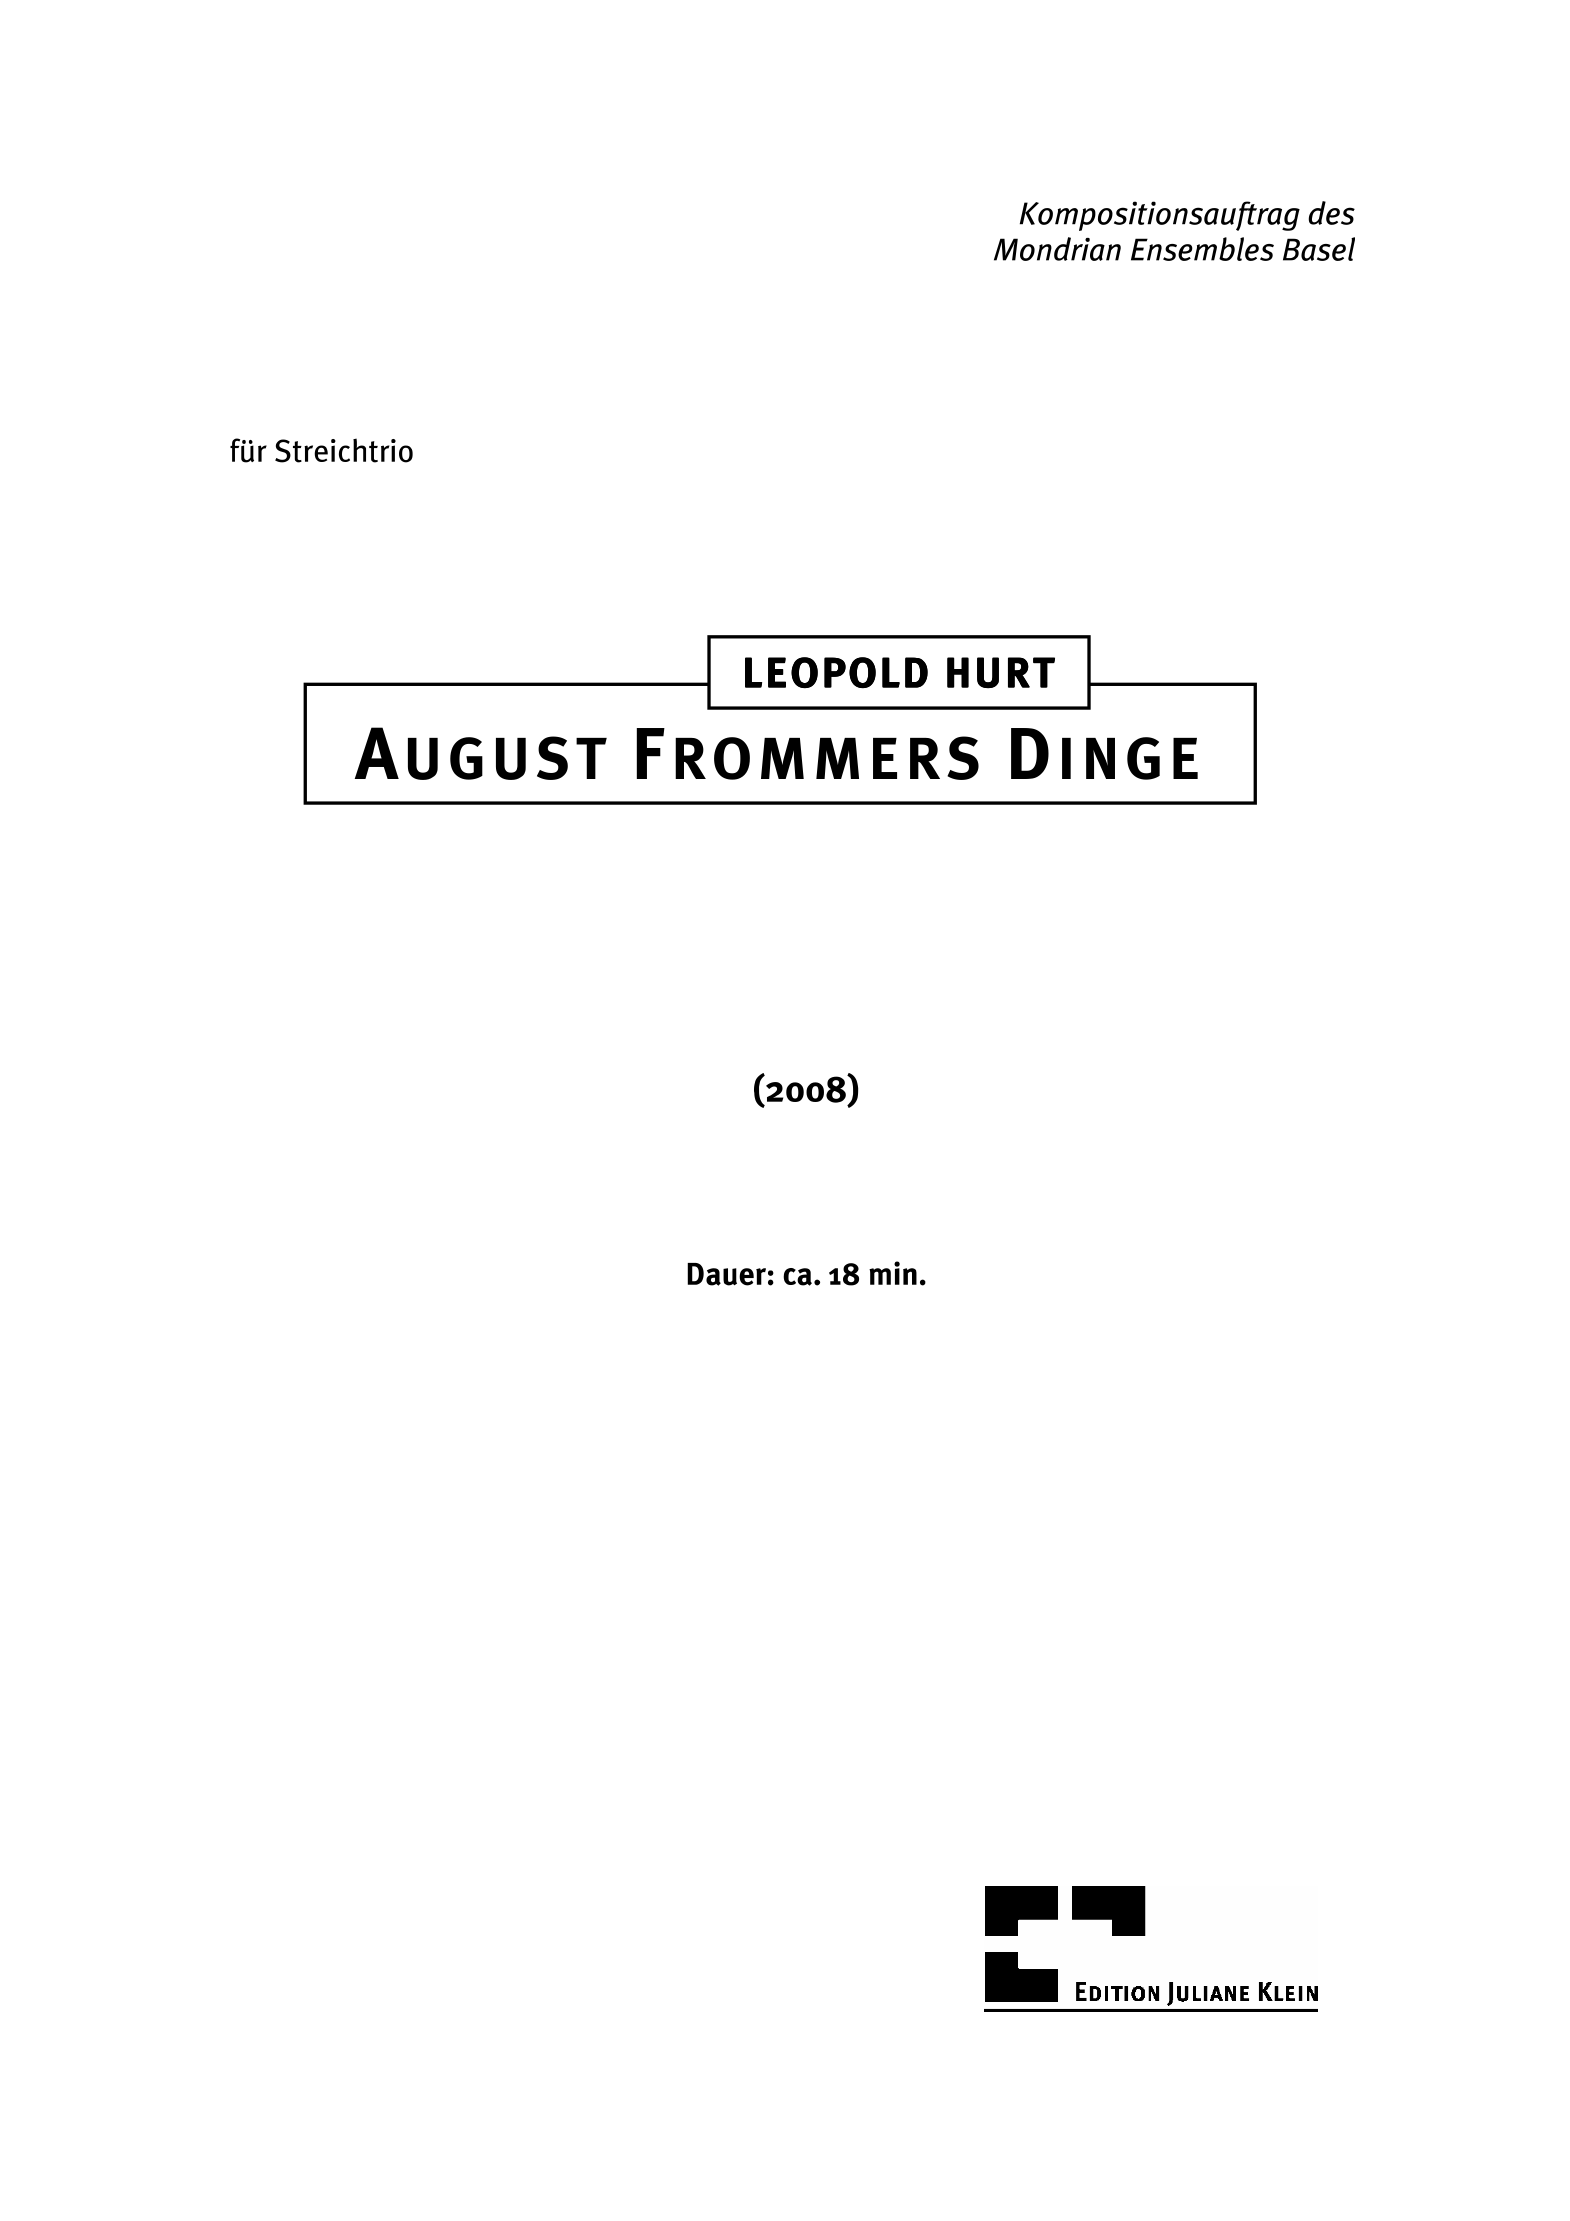 hurt_august frommers dinge z